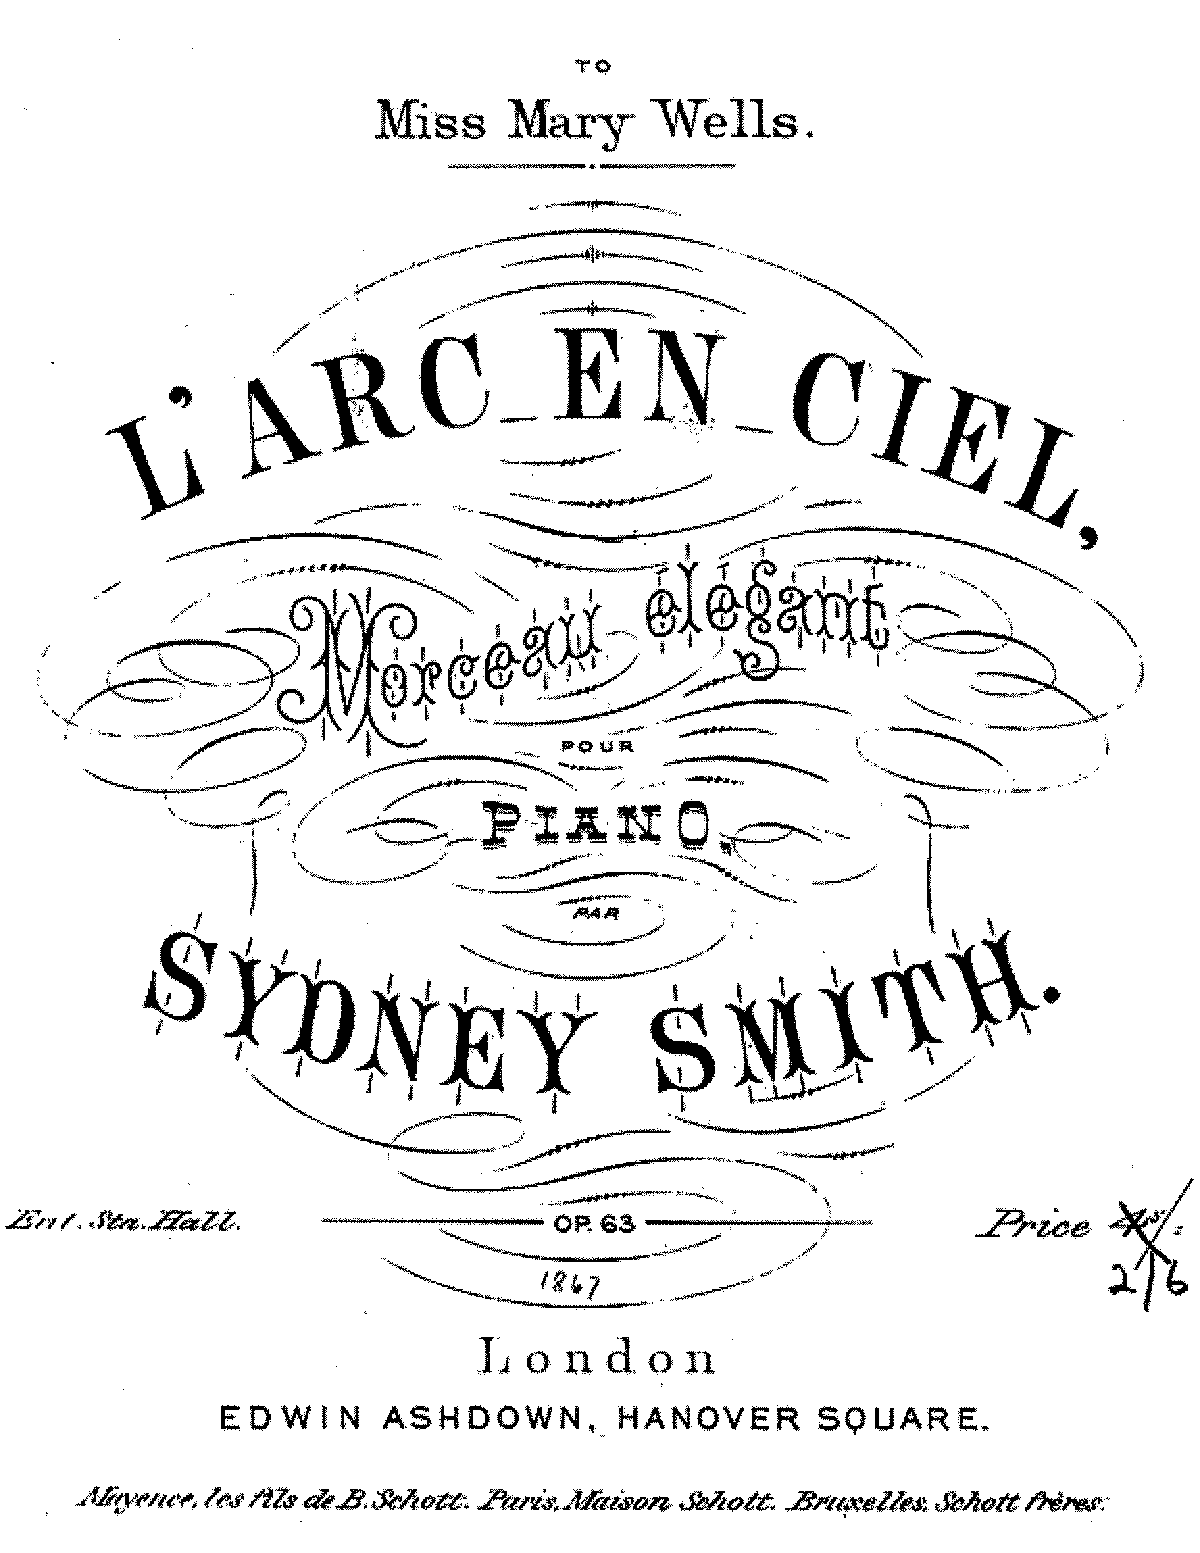 PMLP113109-Smith, Sydney op.63 arc-en-ciel.pdf